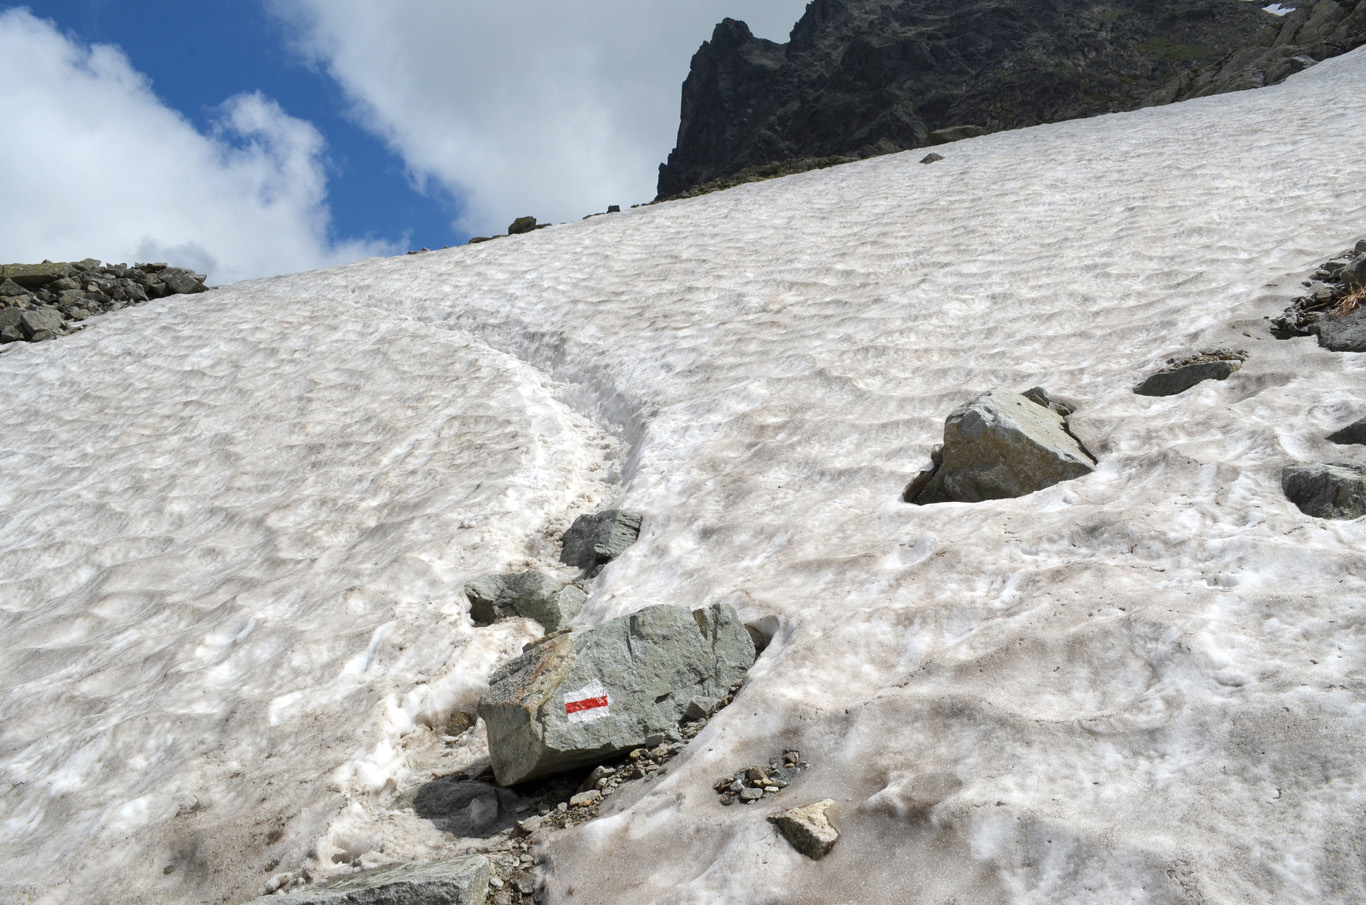 Still lots of snow in places, even though it was the end of June